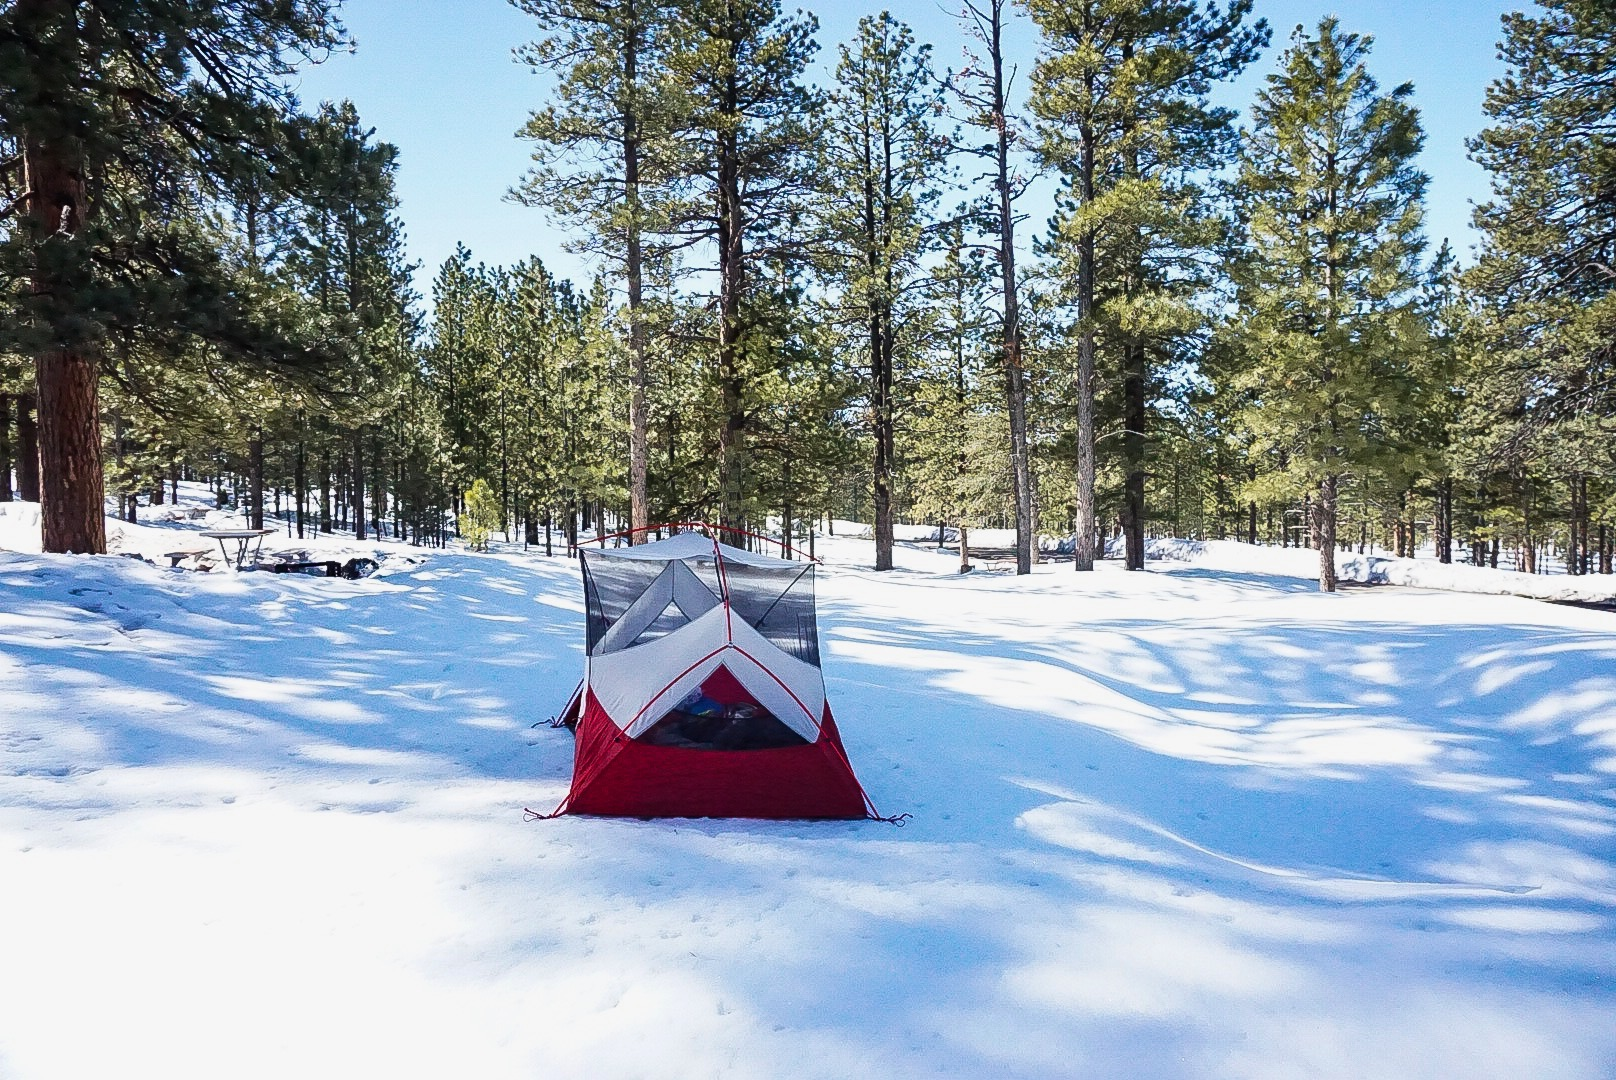 Snow camping in Bryce Canyon National Park. All campgrounds in Bryce are first-come first-serve this year due to construction.